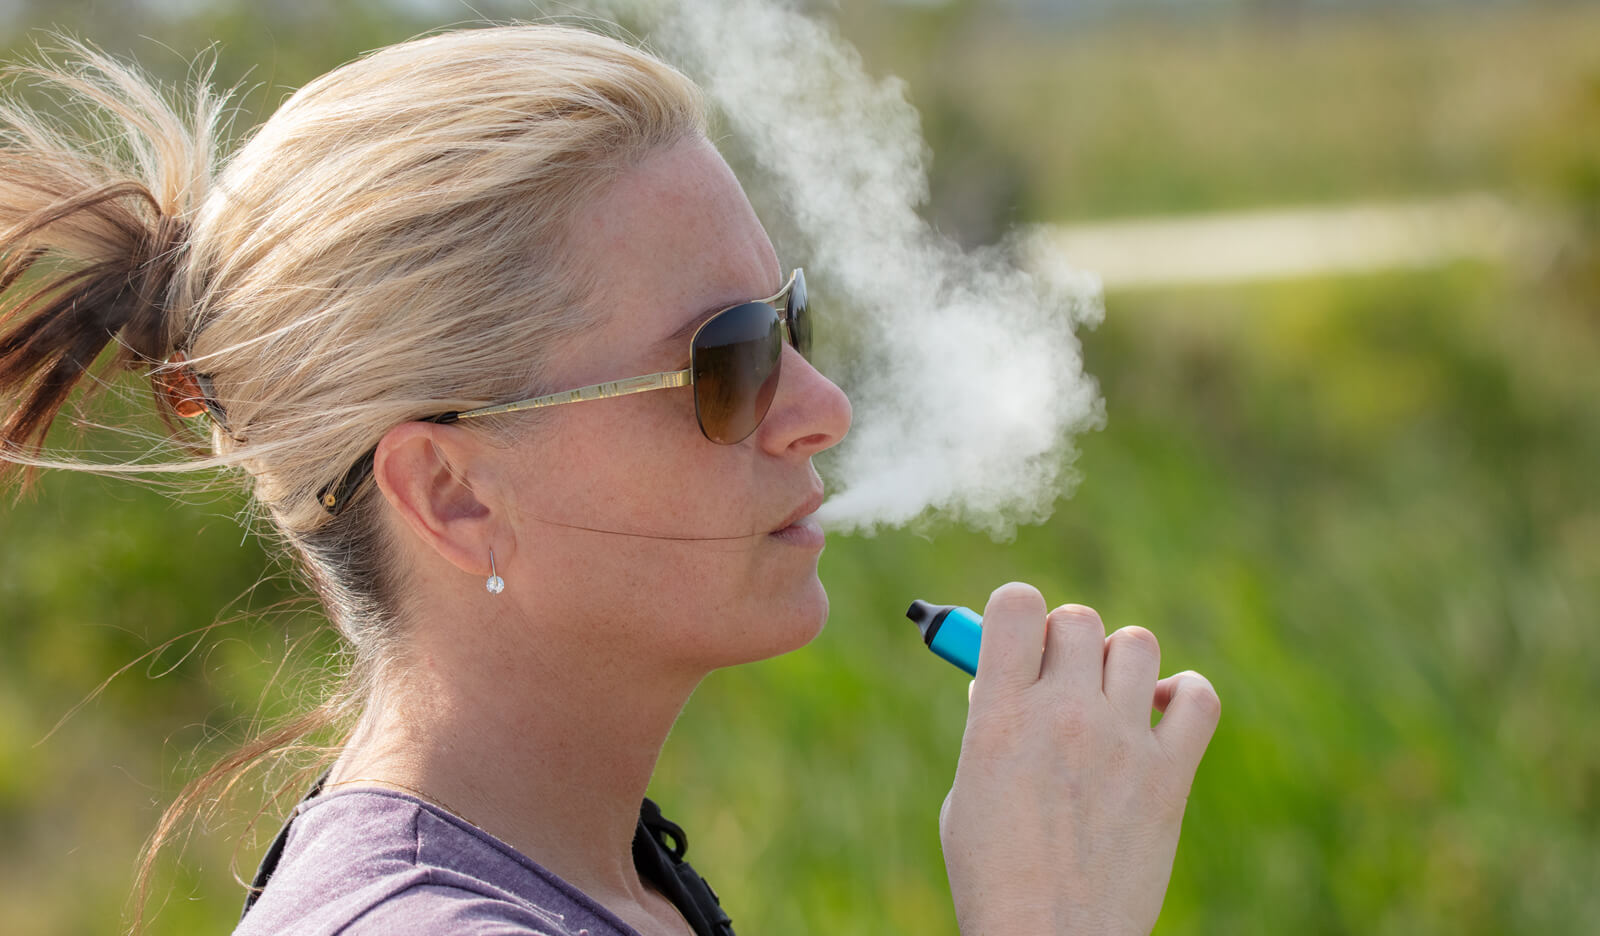 A woman vapes with an e-cigarette